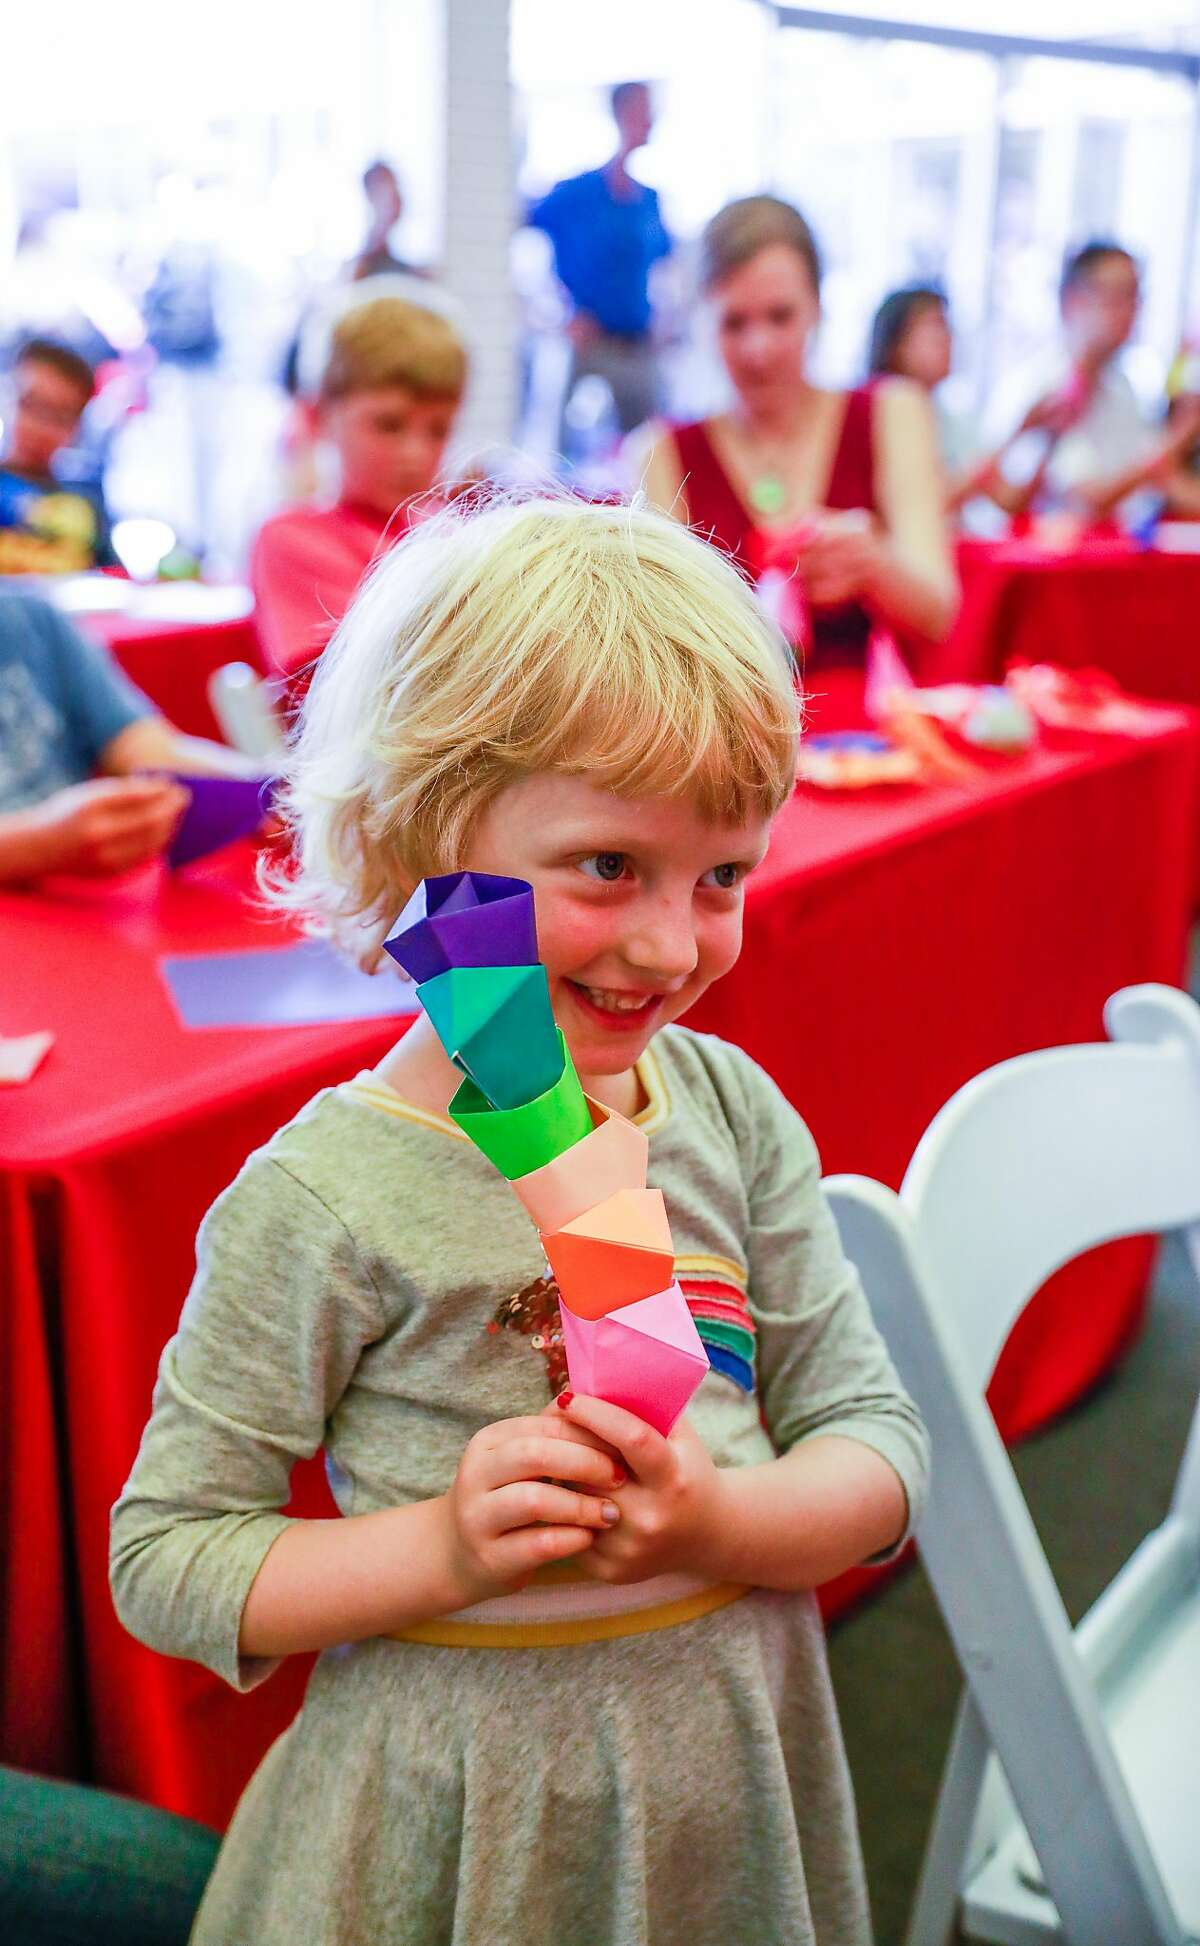 Eden Martin, 5 stacks her origami cones during a class taught by famous origamist Jeremy Shafer (not pictured) at the Origami Palooza in Japantown in San Francisco, California, on Sunday, Aug. 25, 2019.